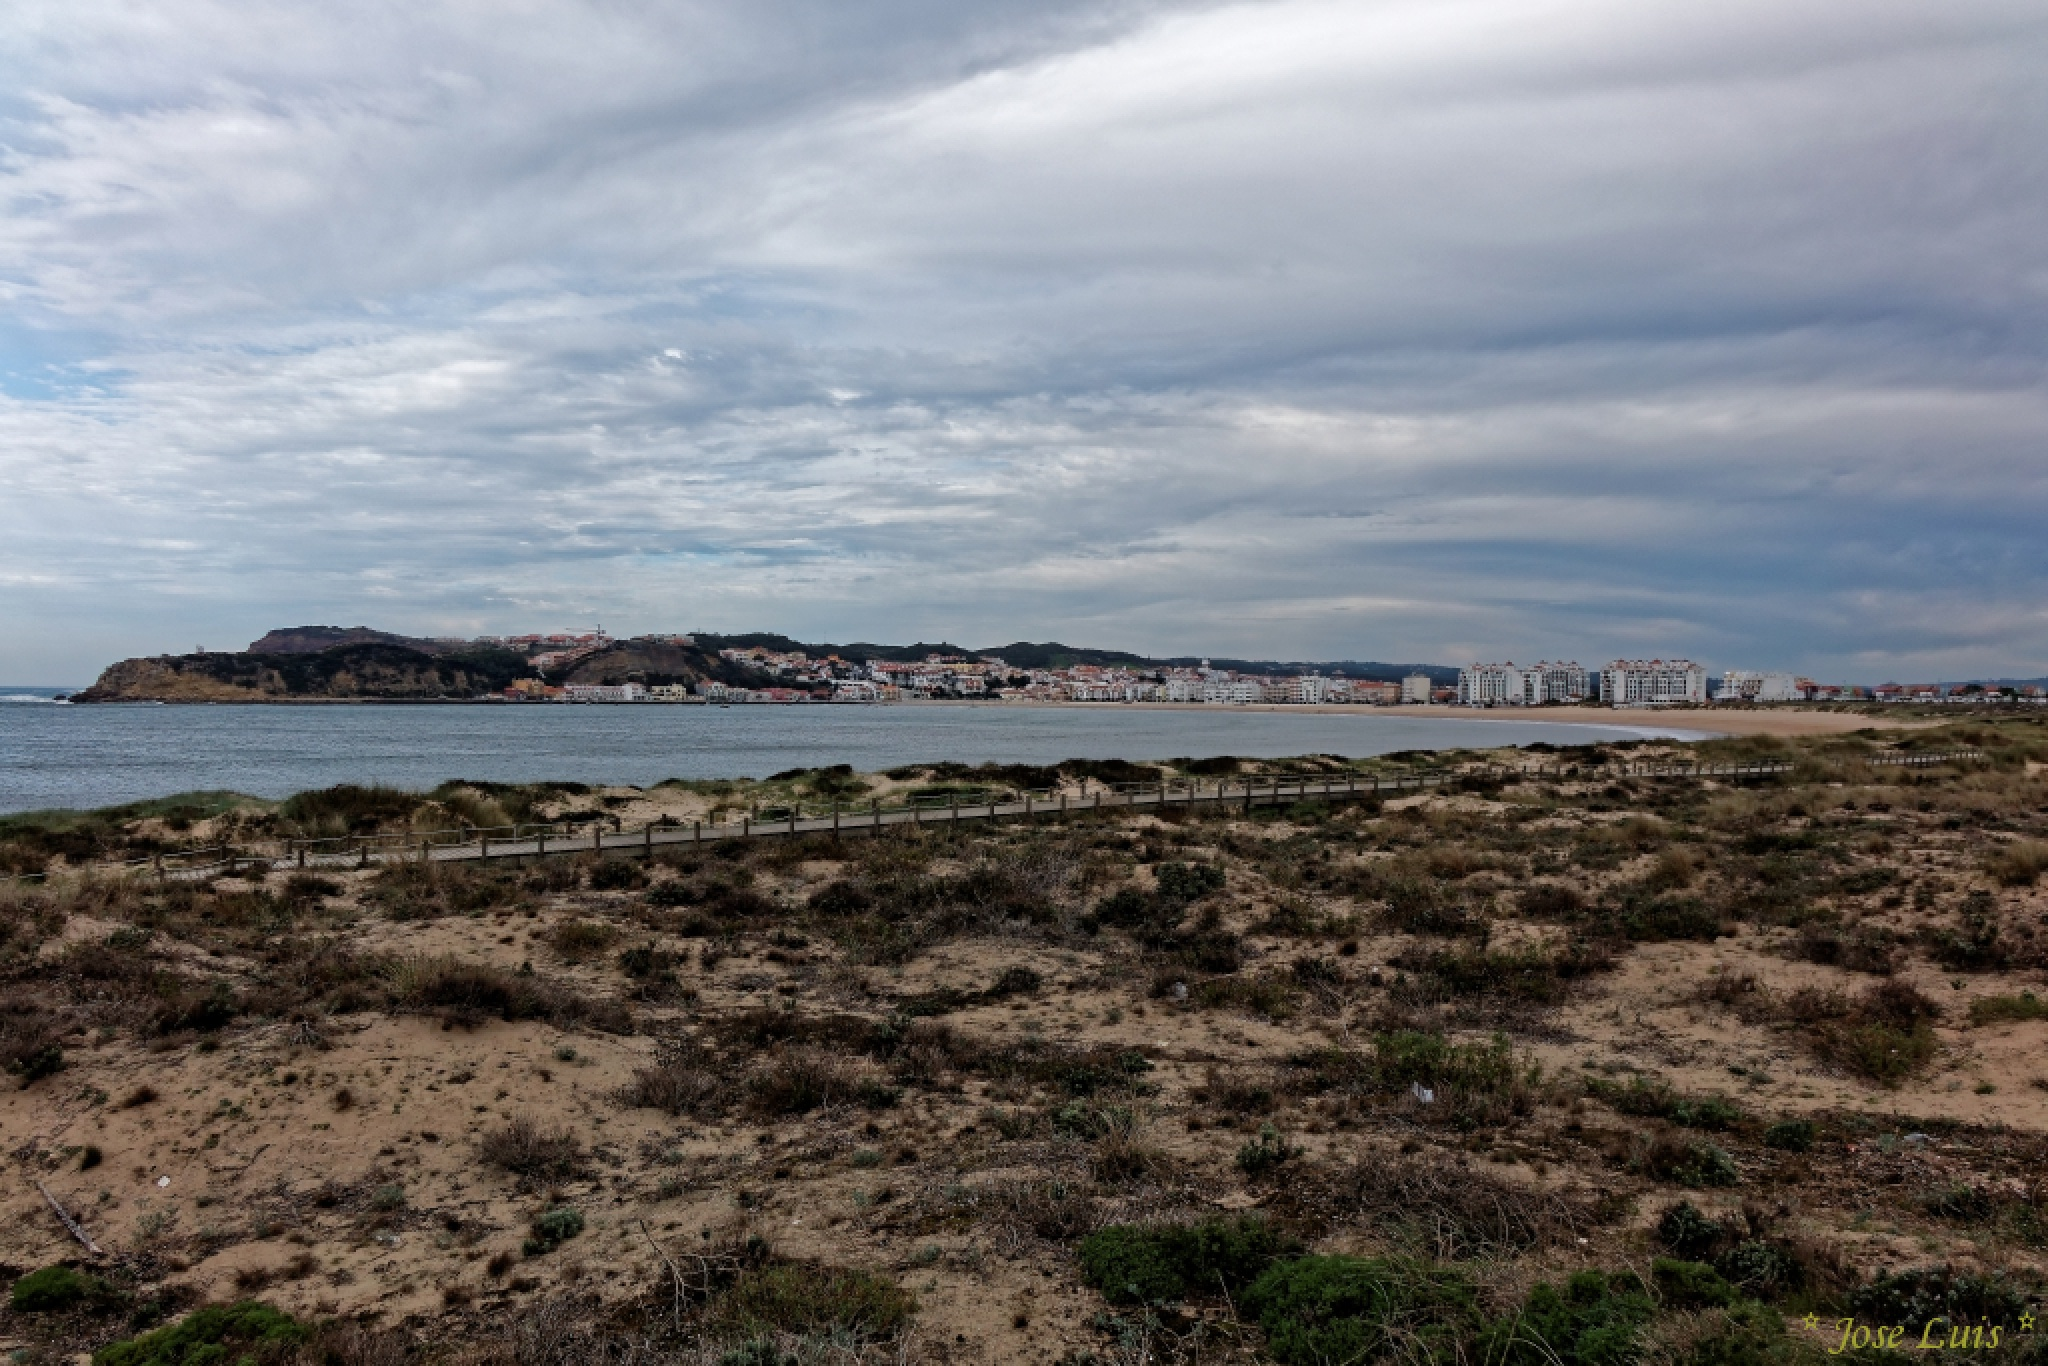 Sao Martinho do Porto by jose.downlord